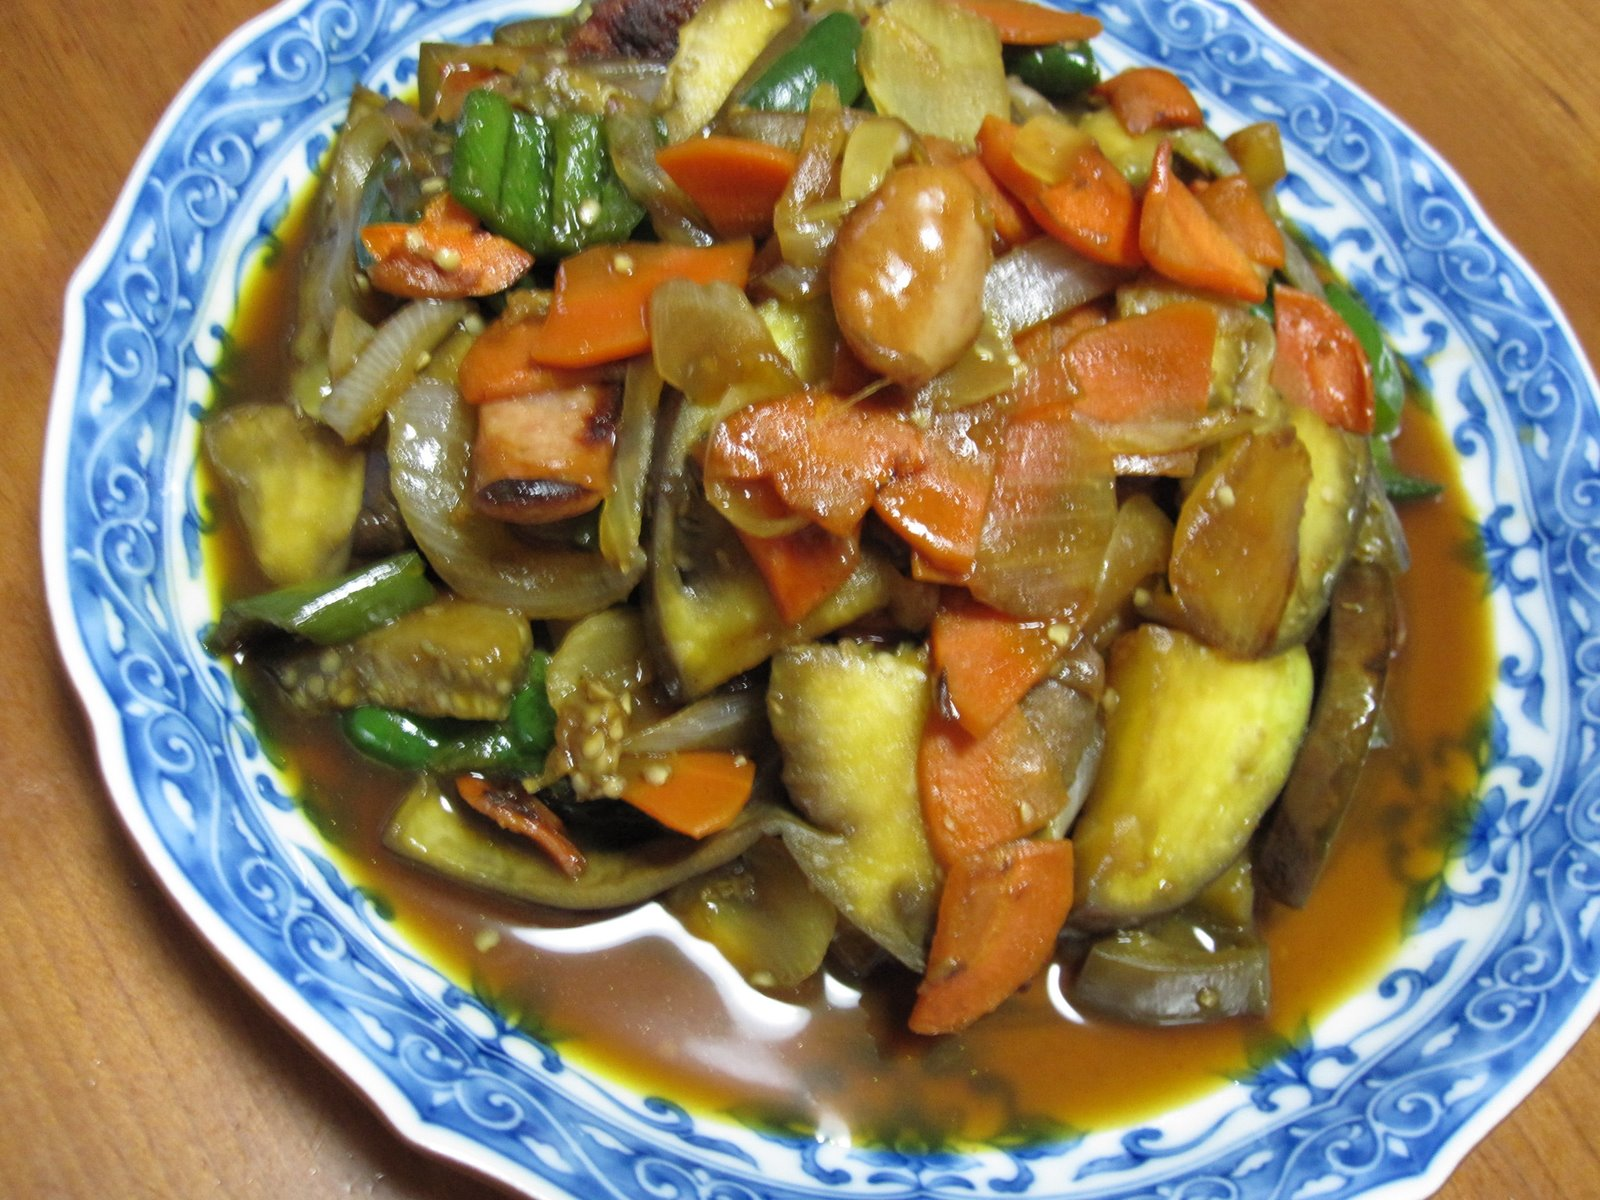 Vegetable stir fry recipe japanese recipes japan food addict japanese yasai itame the japanese word for vegetable stir fry forumfinder Image collections